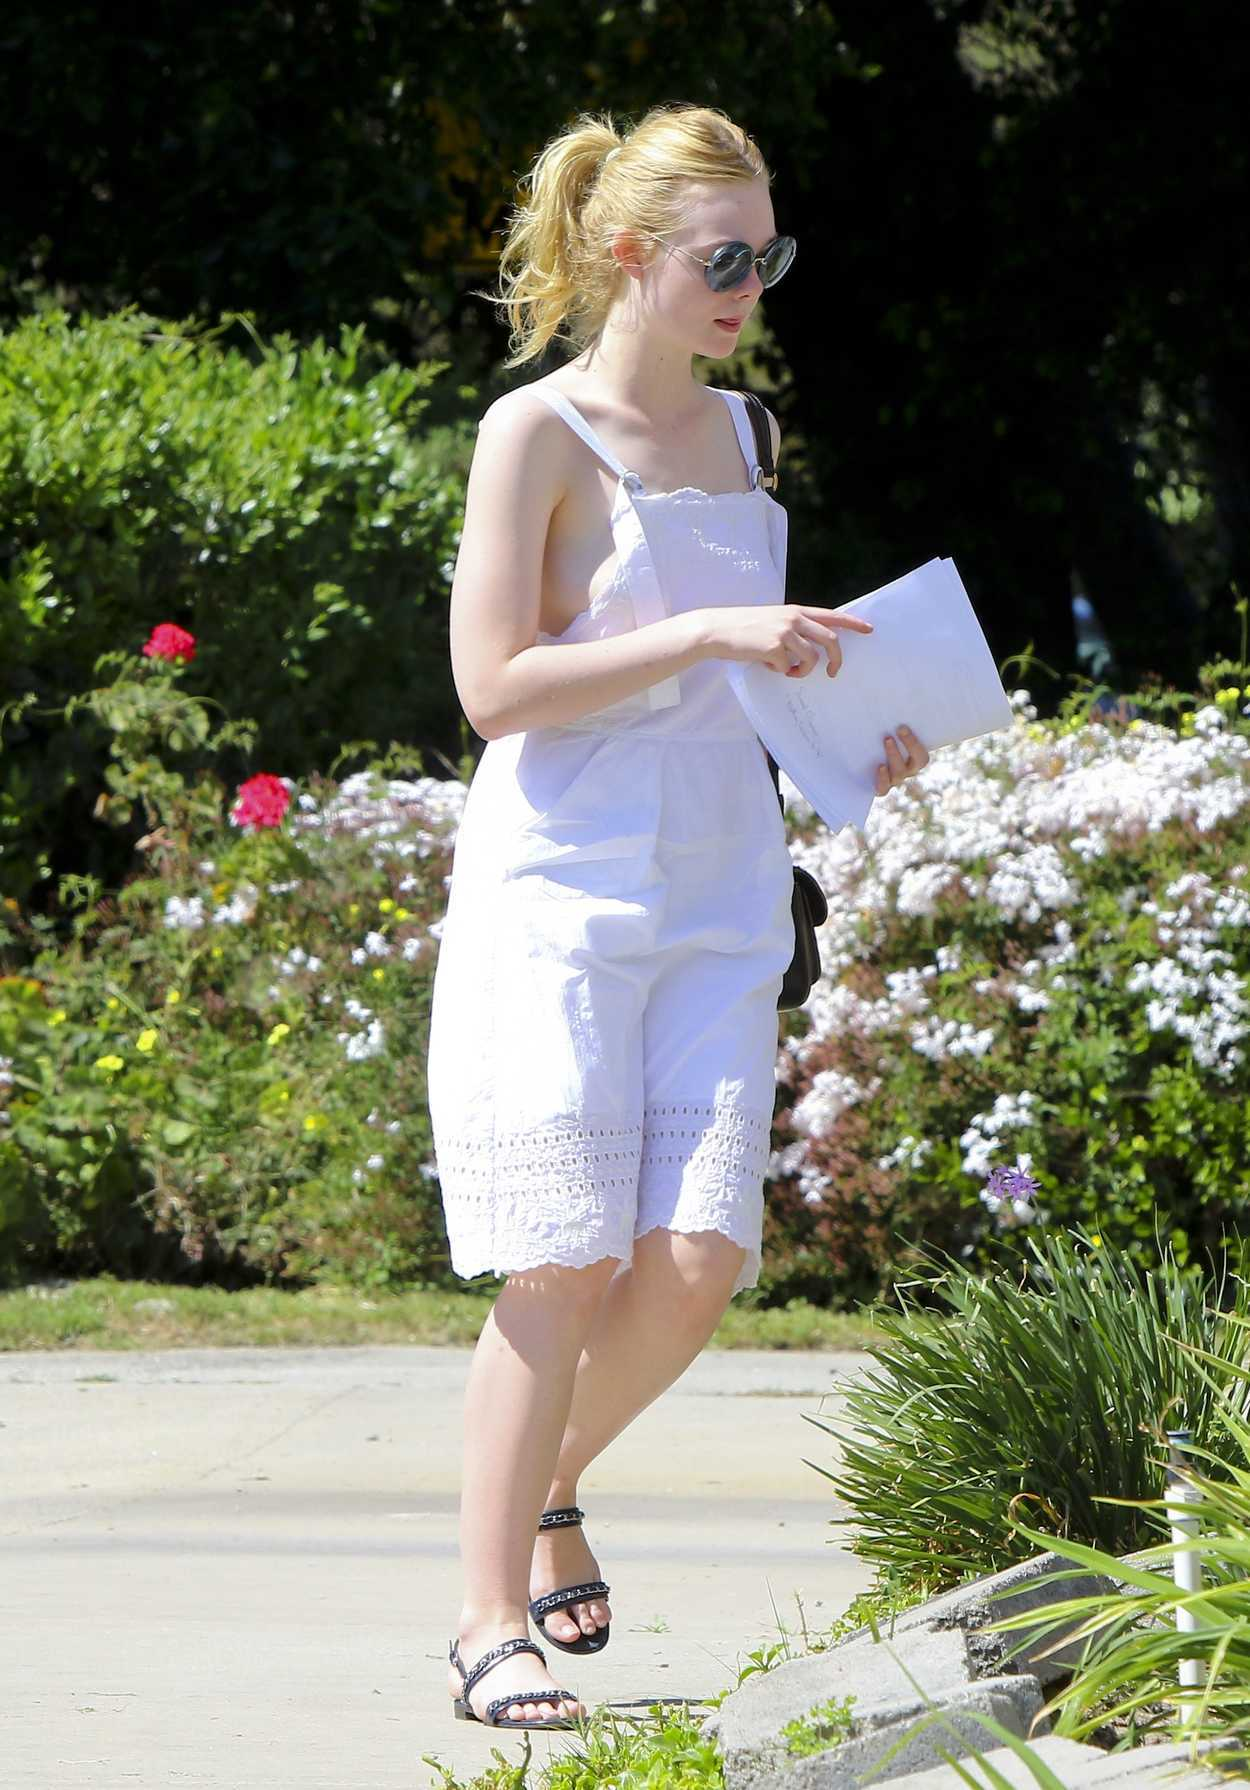 15 elle fanning - photo #17